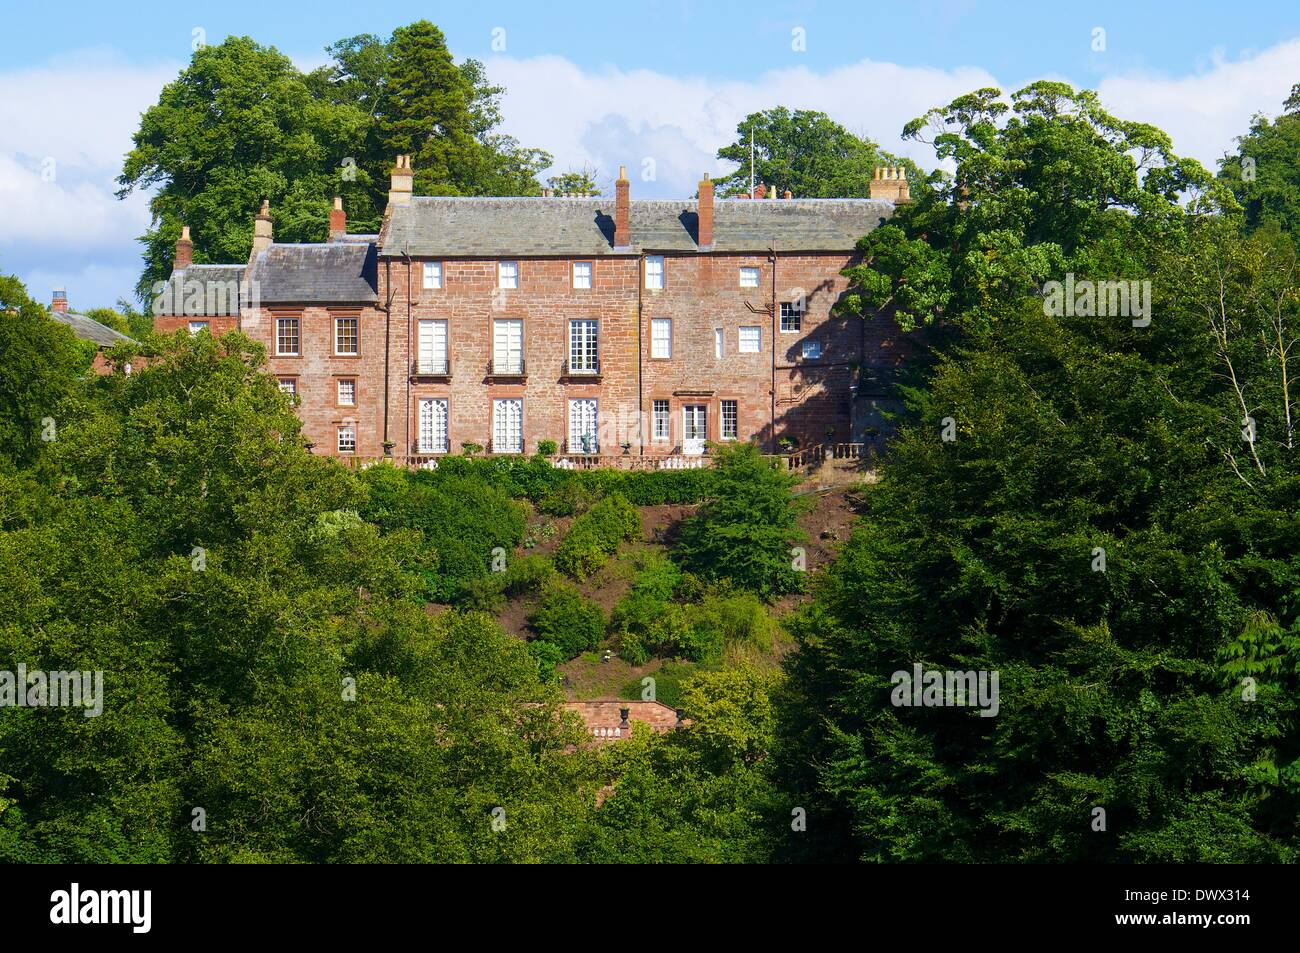 Corby Castle owned by the late Dr Edward Haughey, Baron Ballyedmond. Great Corby near Wetheral, Carlisle, Cumbria, England. - Stock Image